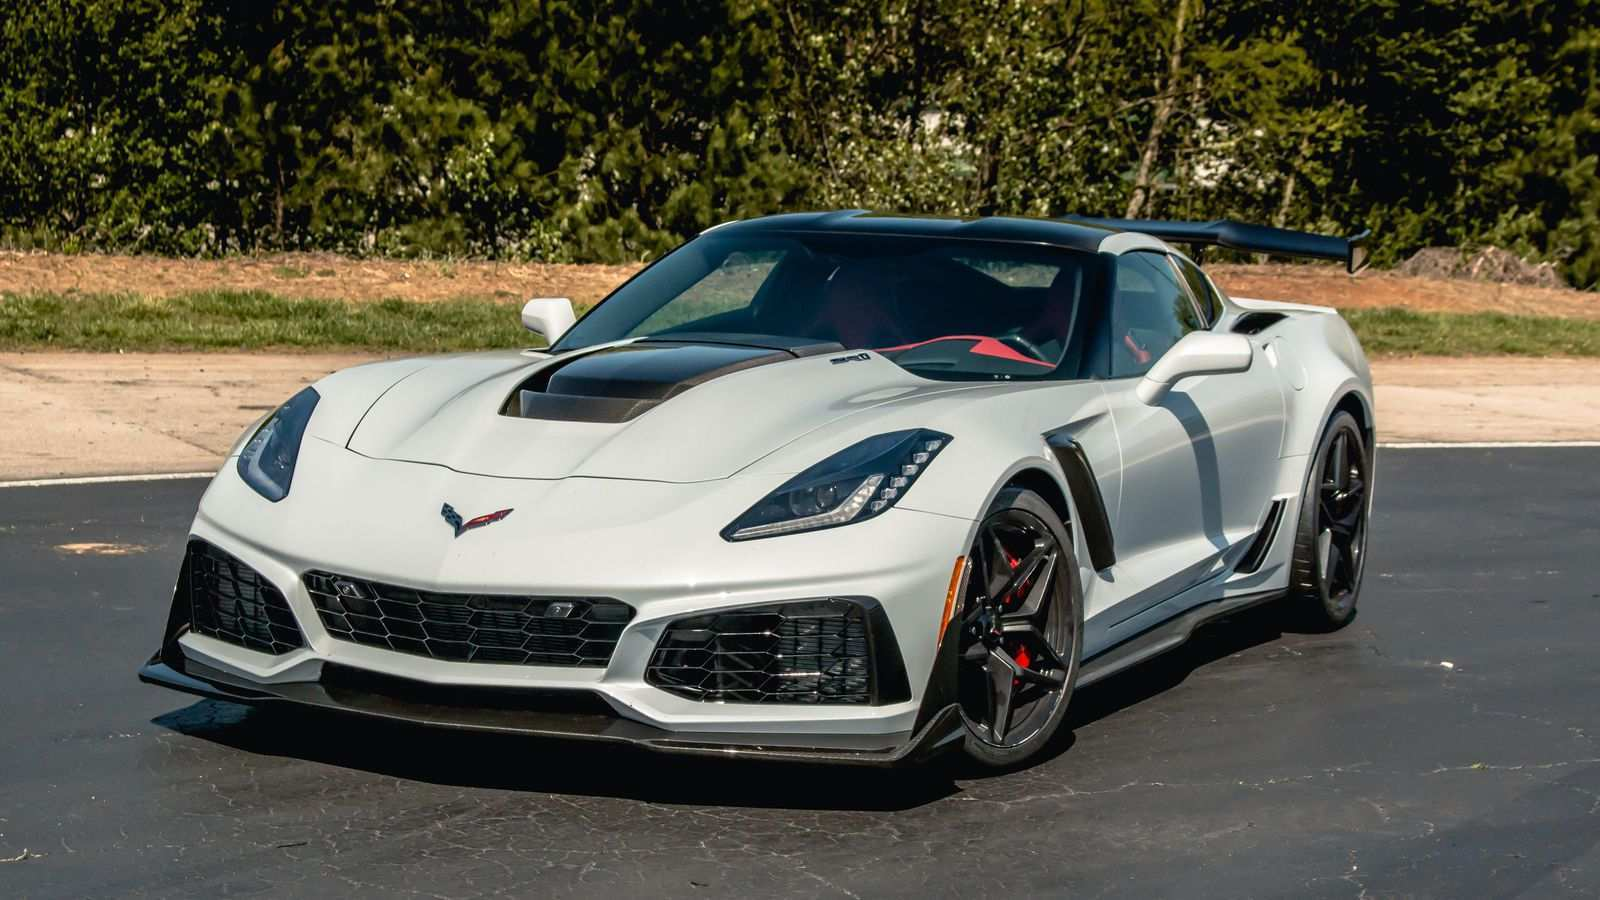 30 The 2019 Chevrolet Corvette Zr1 Price Spesification with 2019 Chevrolet Corvette Zr1 Price